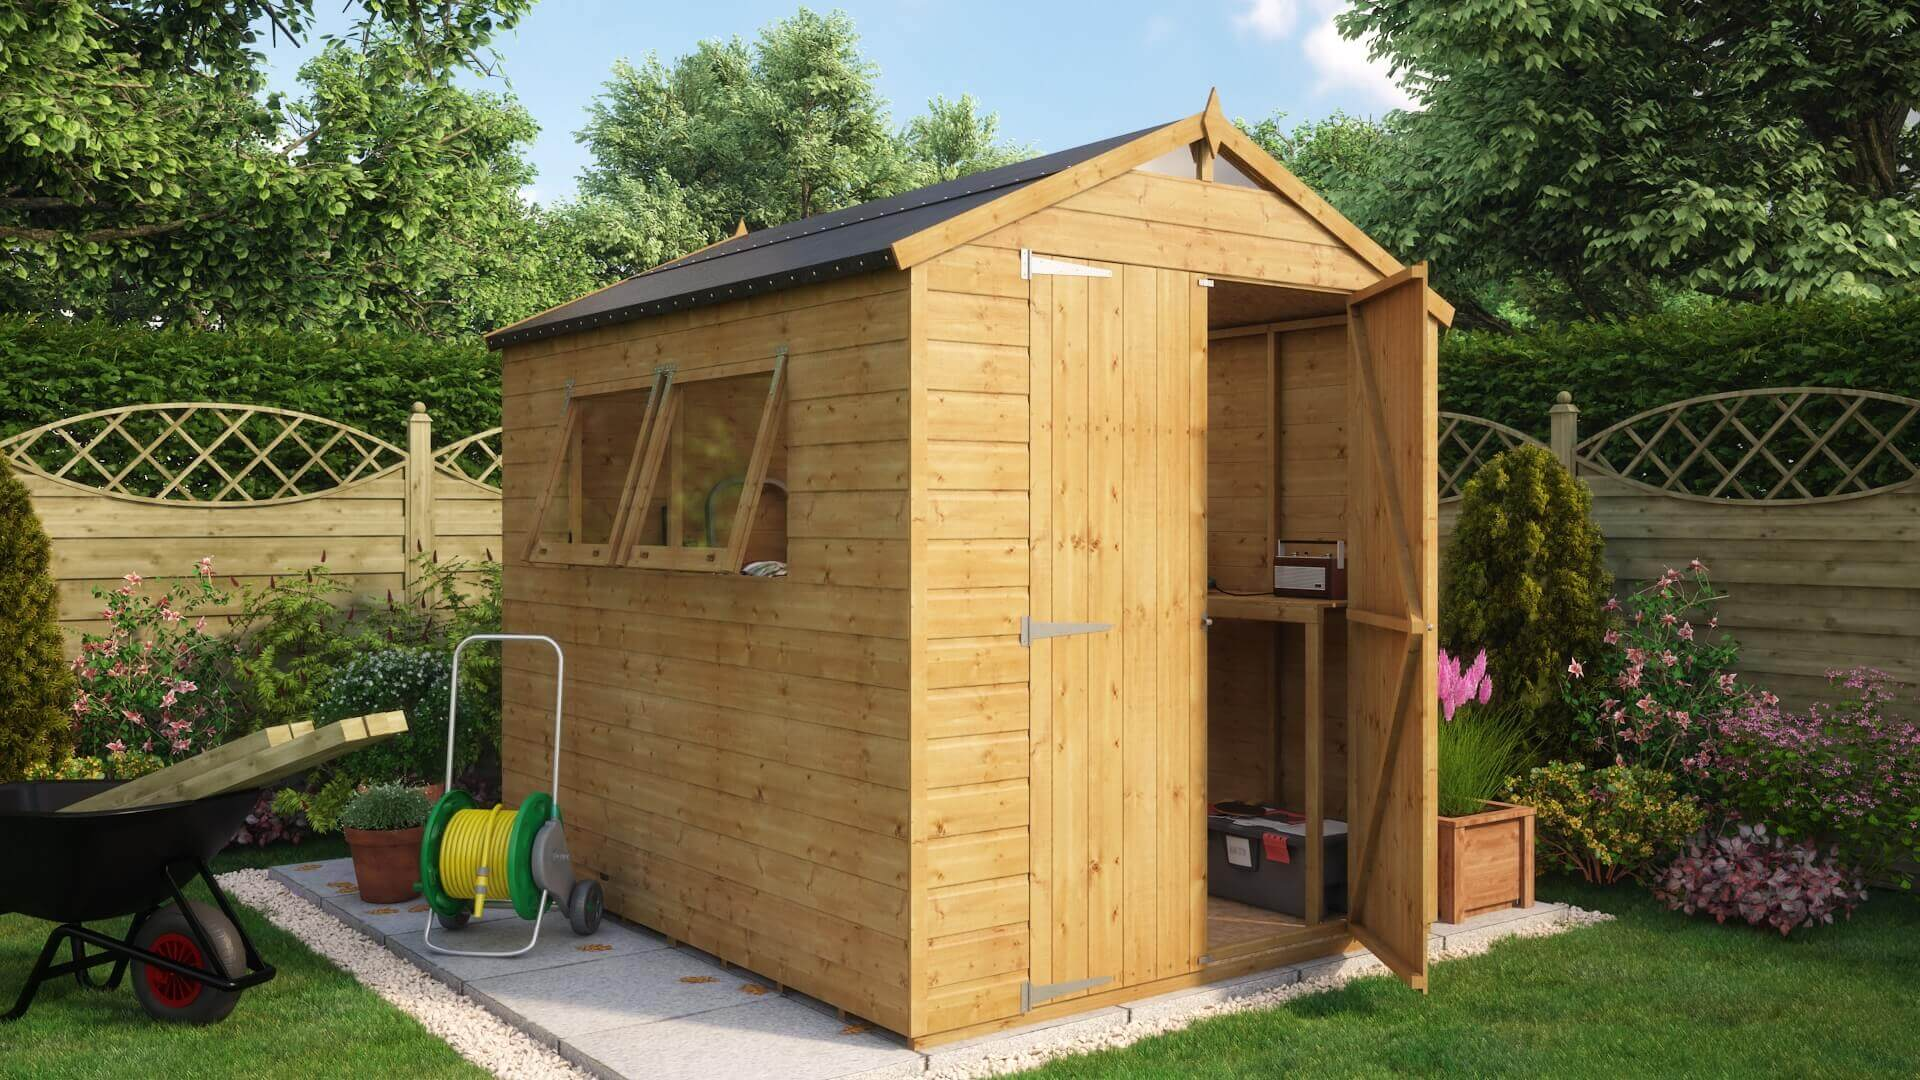 Traditionalapex Windows Garden Sheds Wooden Sheds Project - Difference between log lap sheds and ship lap sheds